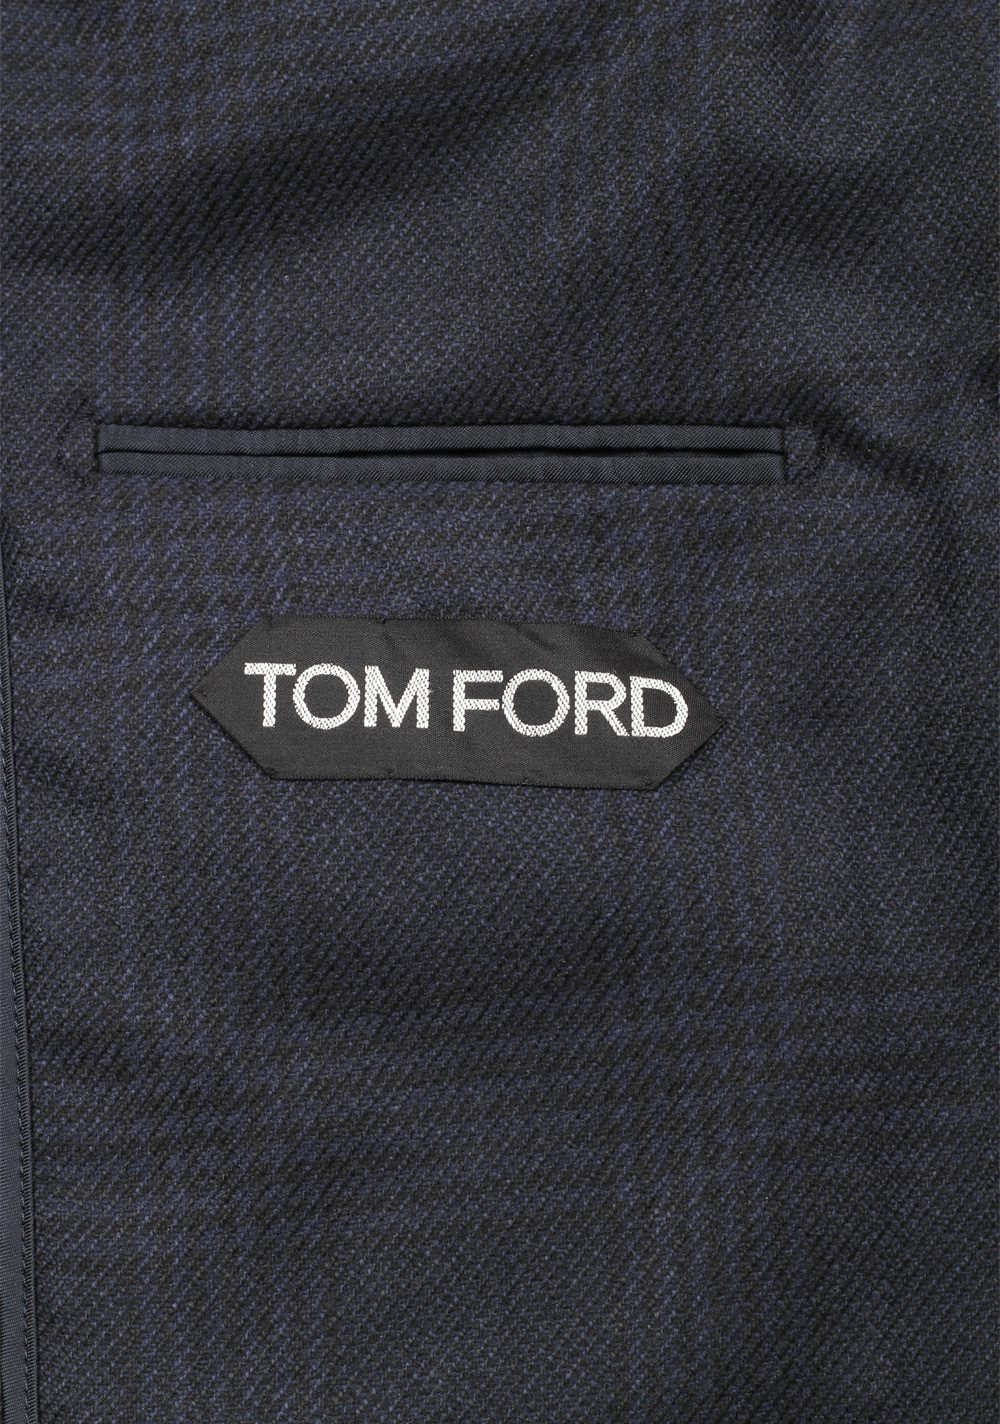 TOM FORD Shelton Checked Blue Sport Coat Size 48 / 38R U.S. In Silk Cashmere | Costume Limité